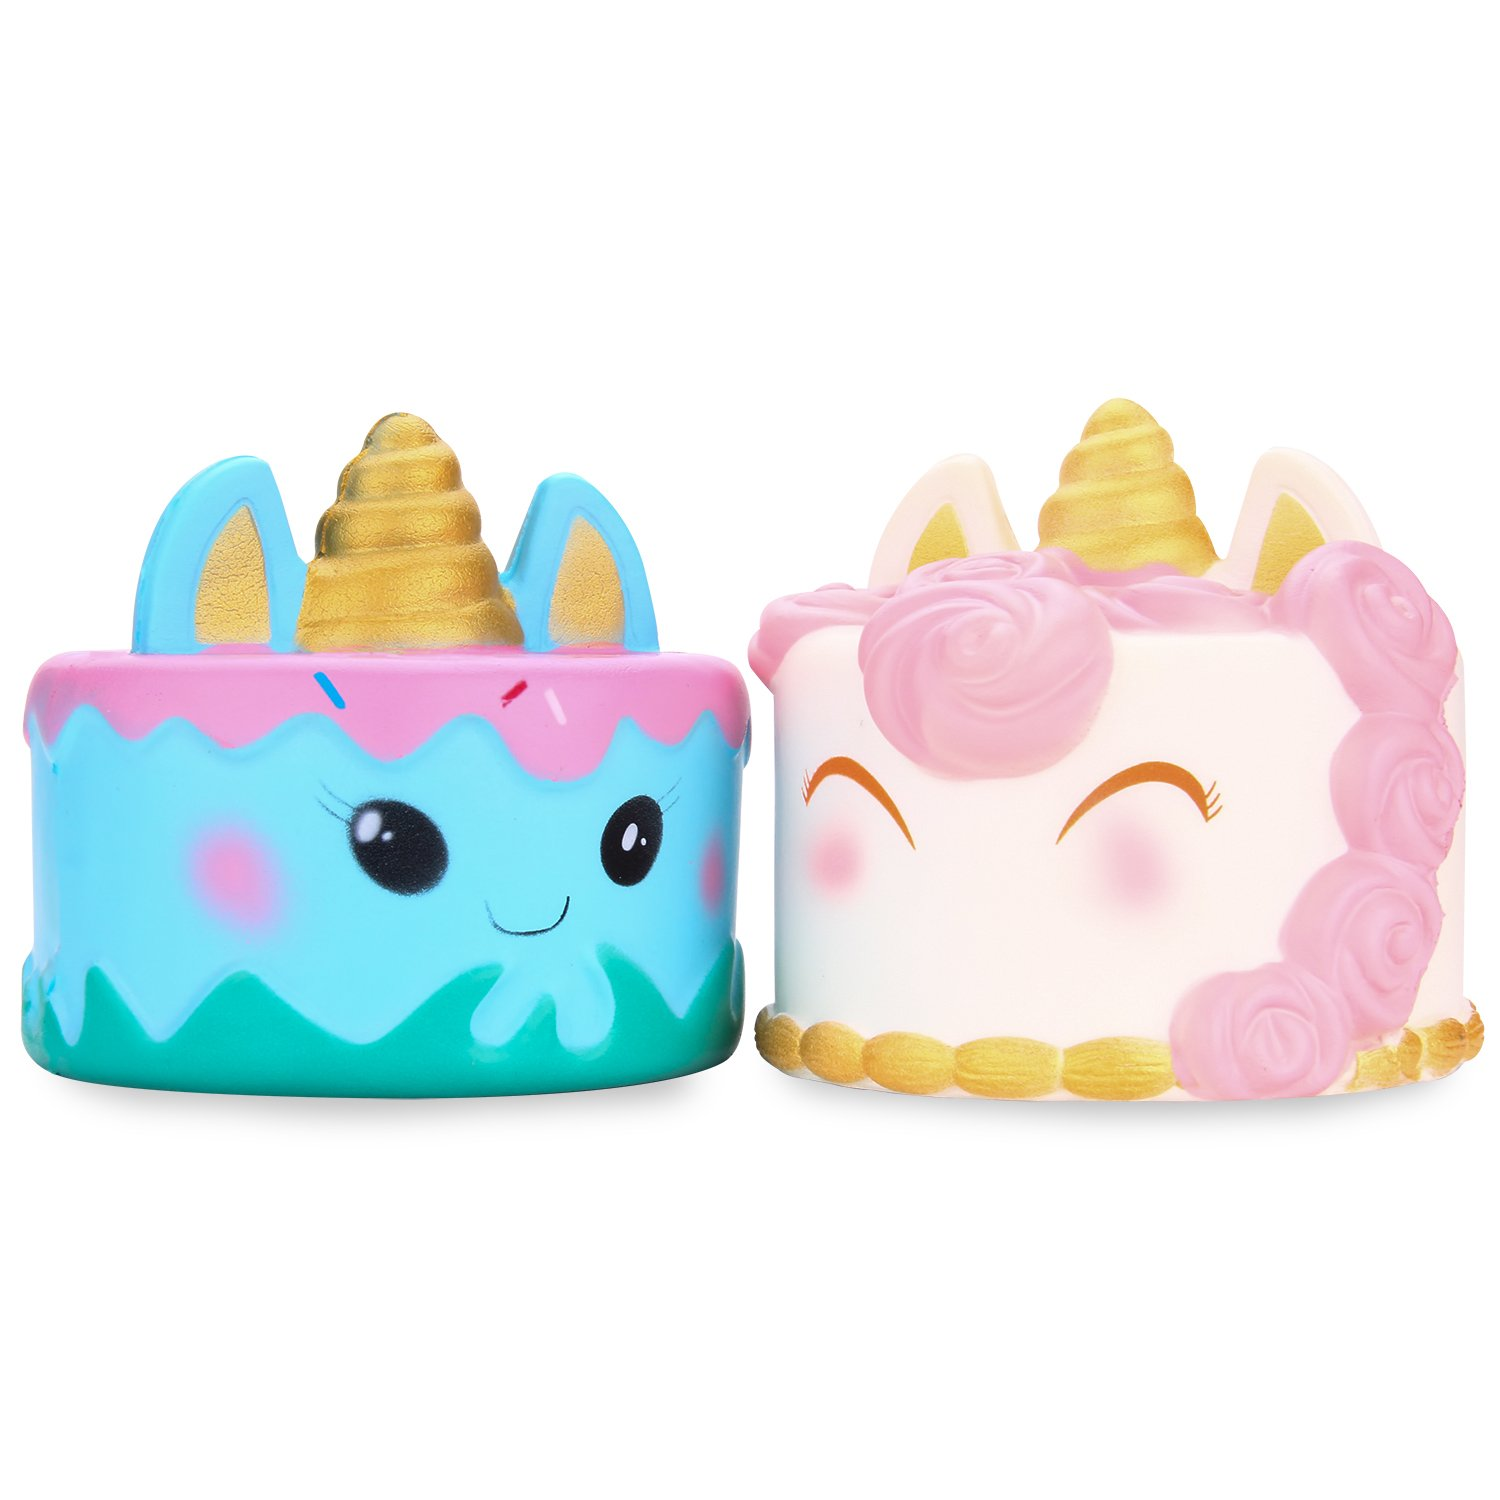 WATINC Kawaii Jumbo 2p Unicorn Cake Set Squishy Slow Rising Sweet Scented Vent Charms Kid Toy Hand Toy, Stress Relief Toy, Decorative Props Doll Gift Fun Large(2p Unicorn Cake)